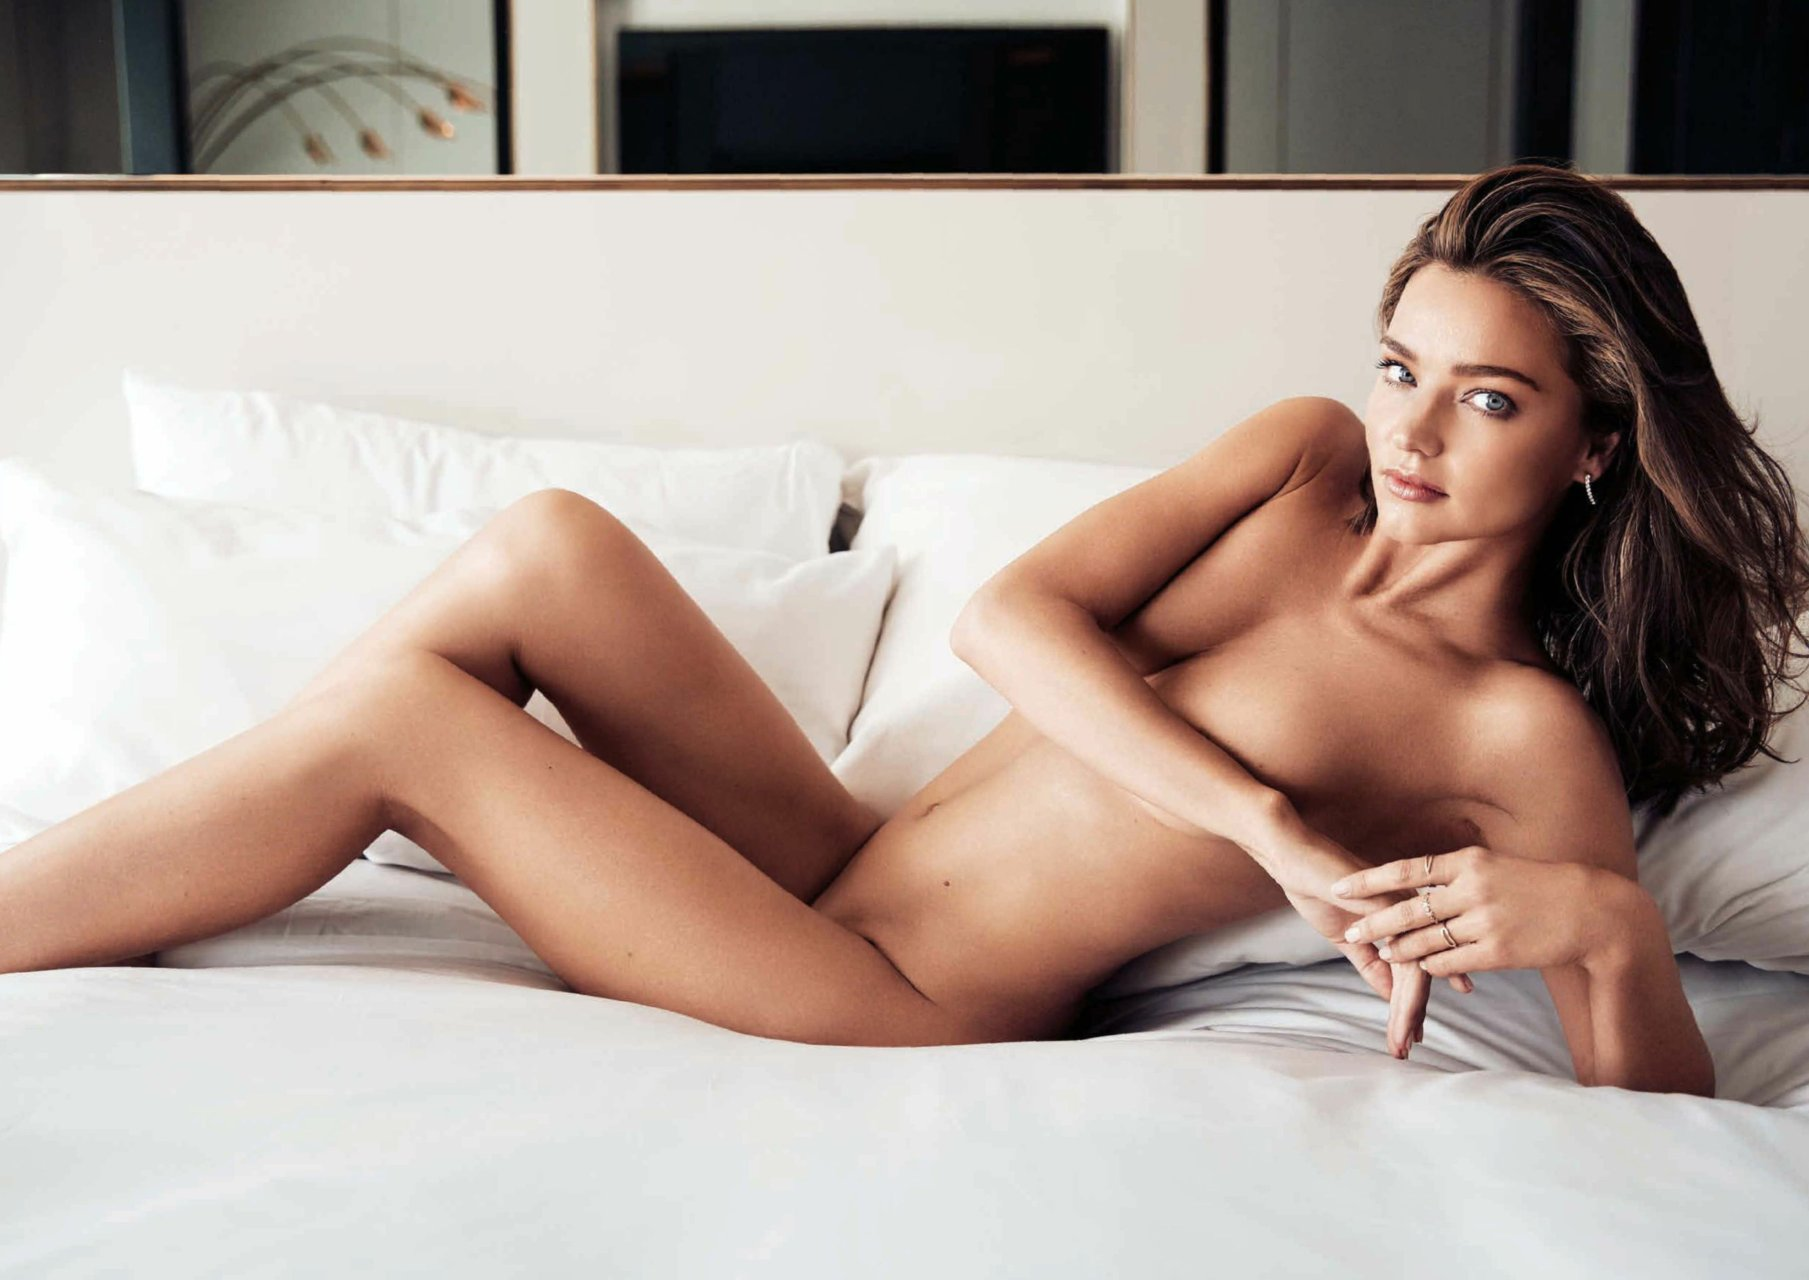 Porn Miranda Kerr nudes (21 photo), Topless, Leaked, Selfie, butt 2020